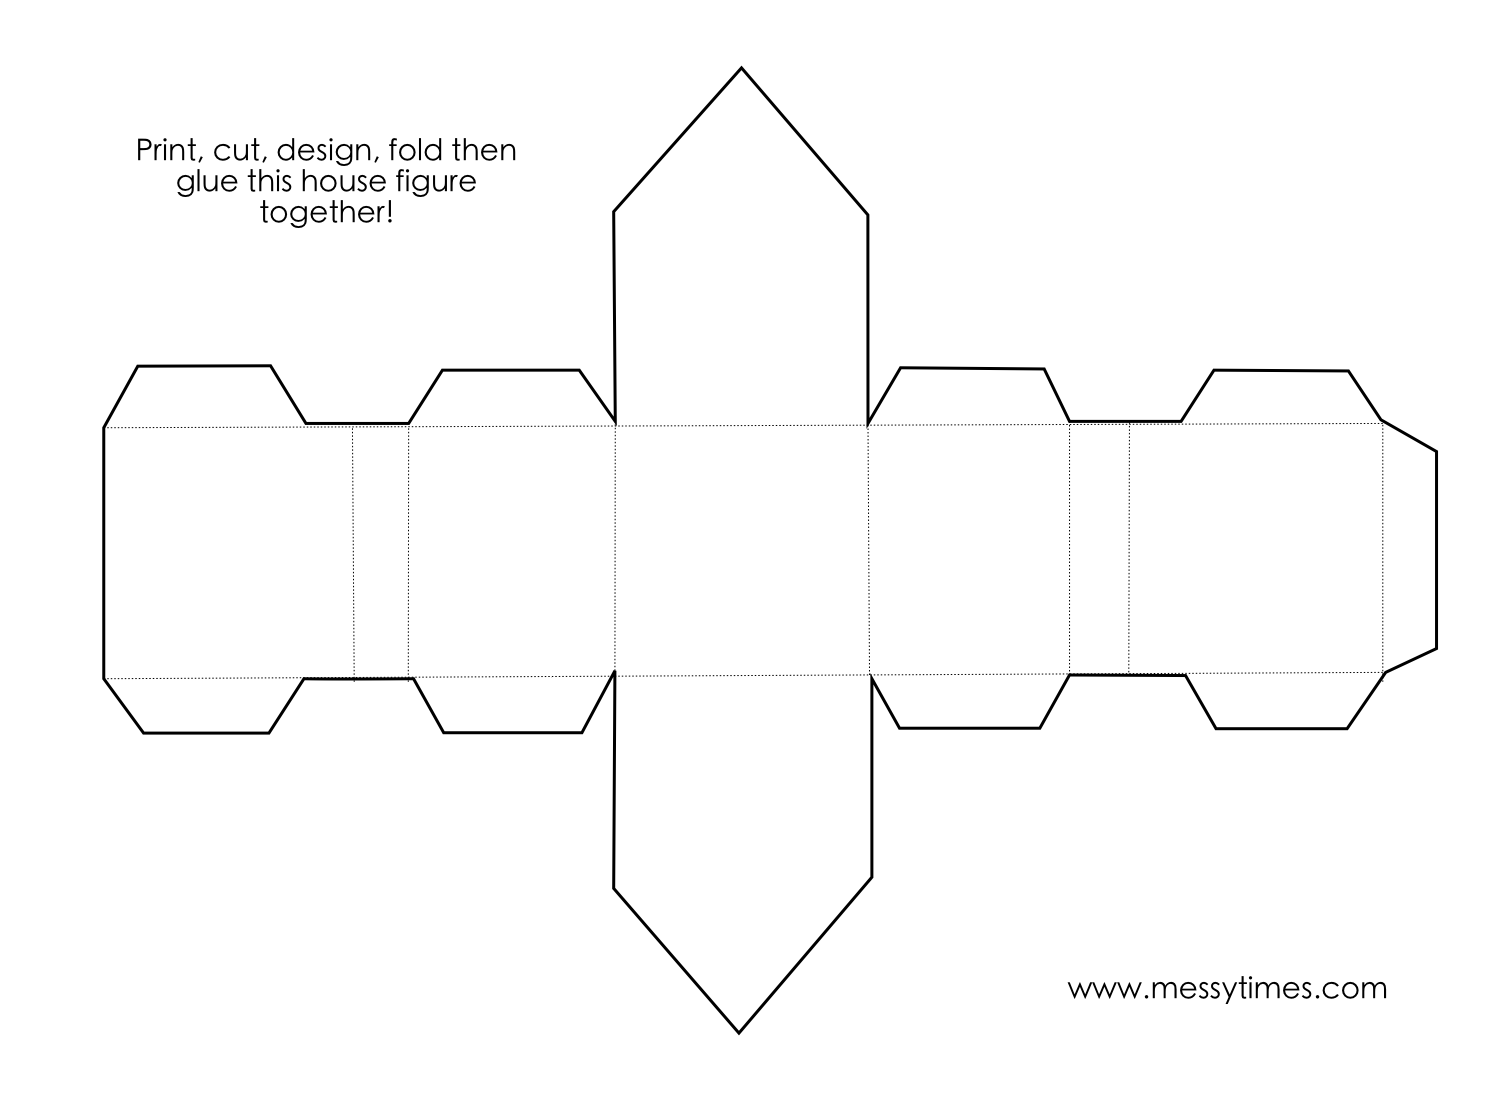 A 3d House Object To Cut Design Fold And Glue Together Geometry Printable Kids Activity